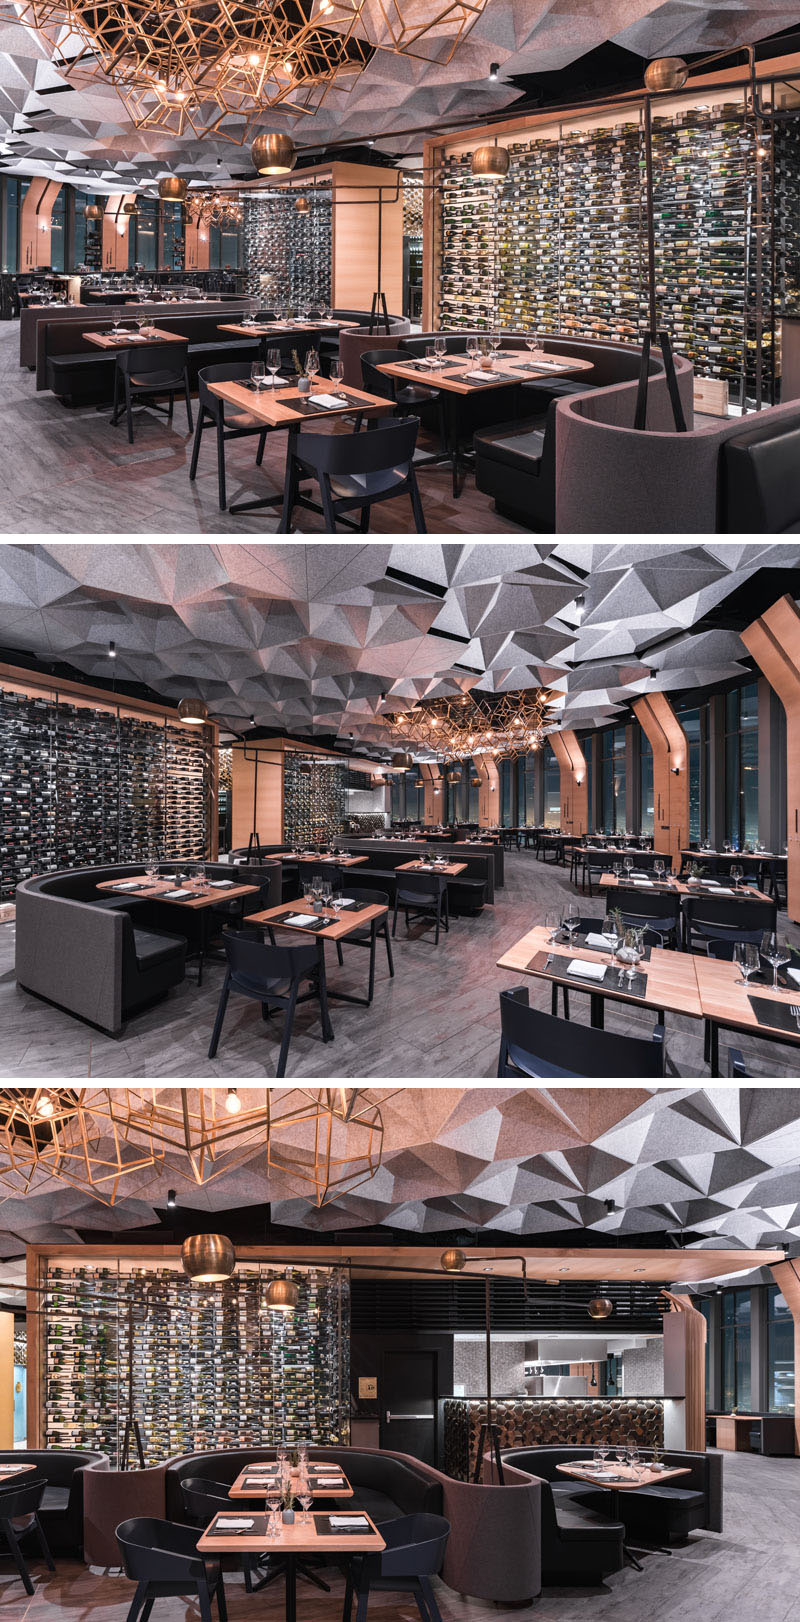 The 71 Above Restaurant in California by Tag Front Architects.